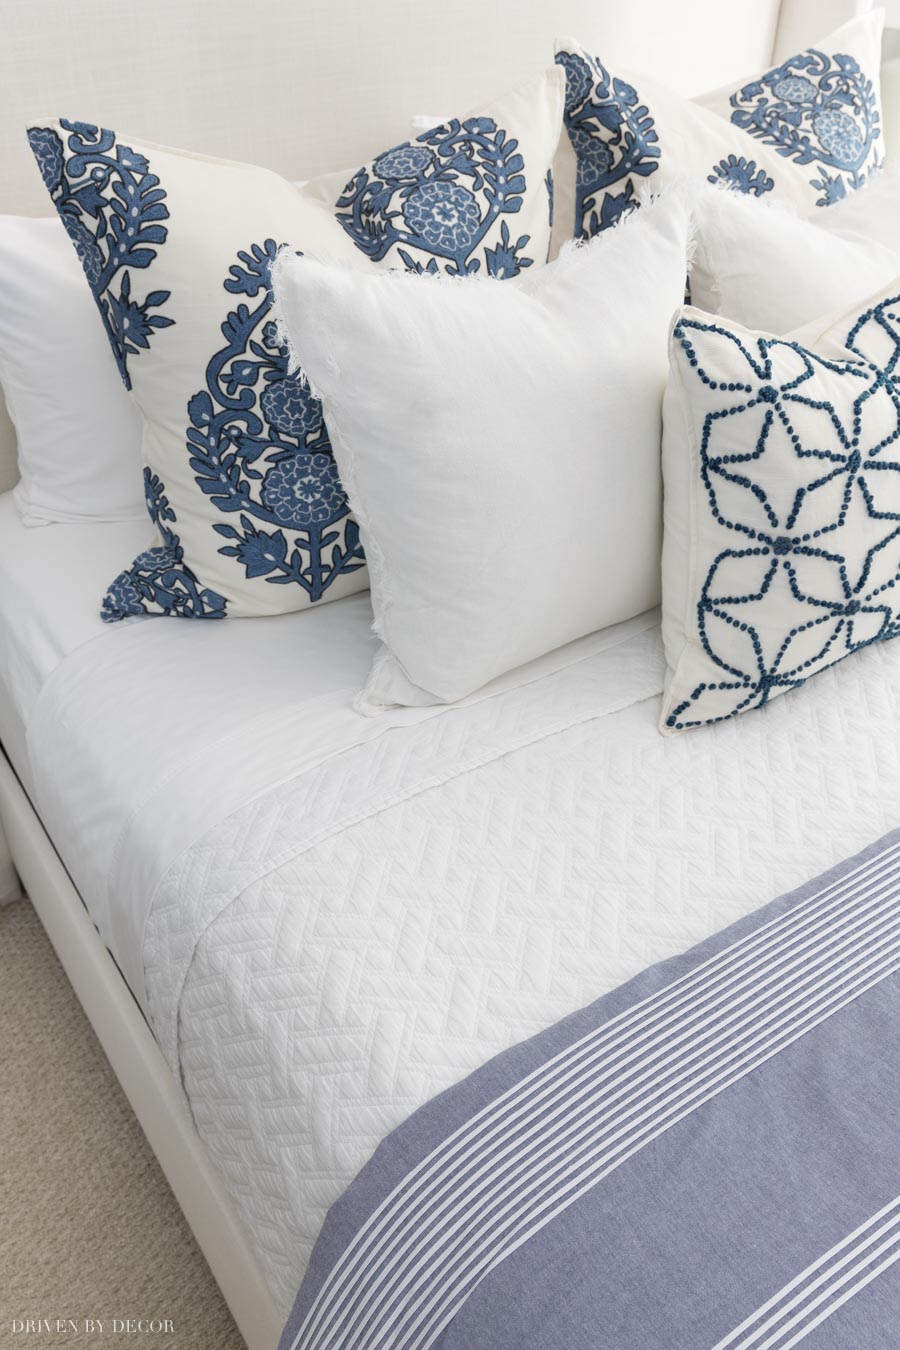 Great post with advice about the best sheets for your bed!